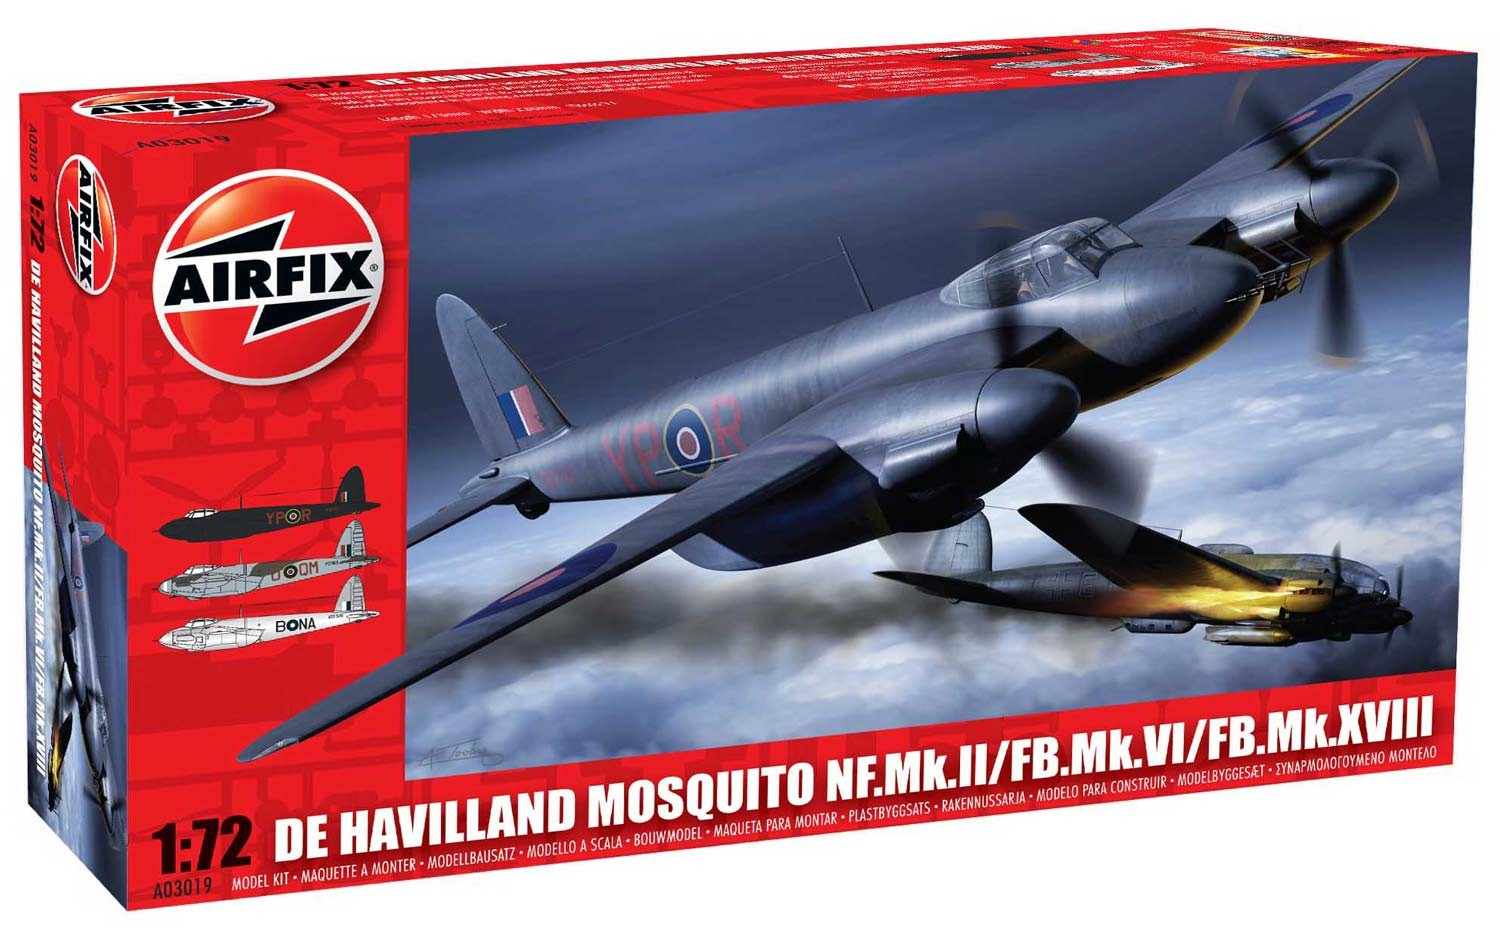 Airfix De Havilland Mosquito MkII VI XVIII 1:72nd Scale